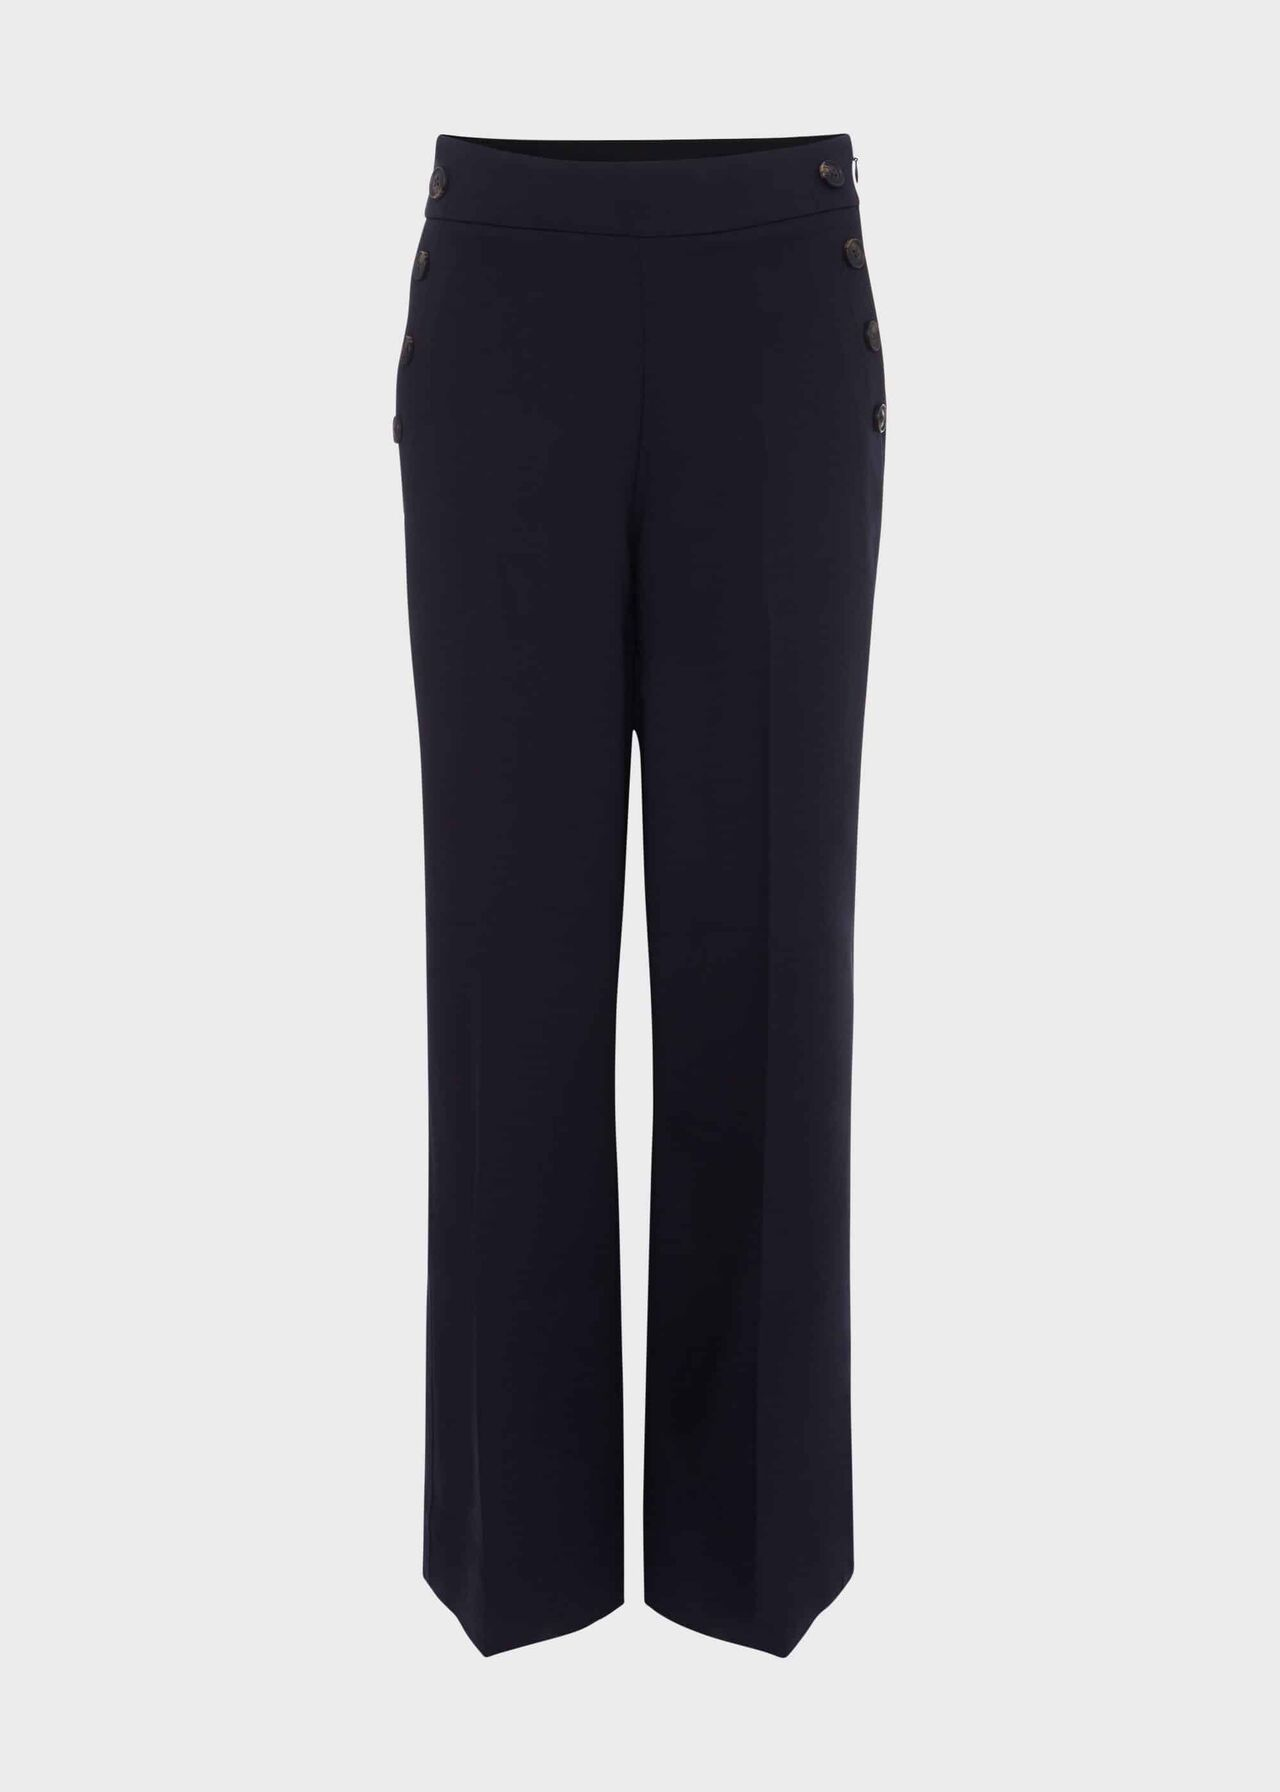 Simone Cotton Blend Wide Leg Trousers, Navy, hi-res